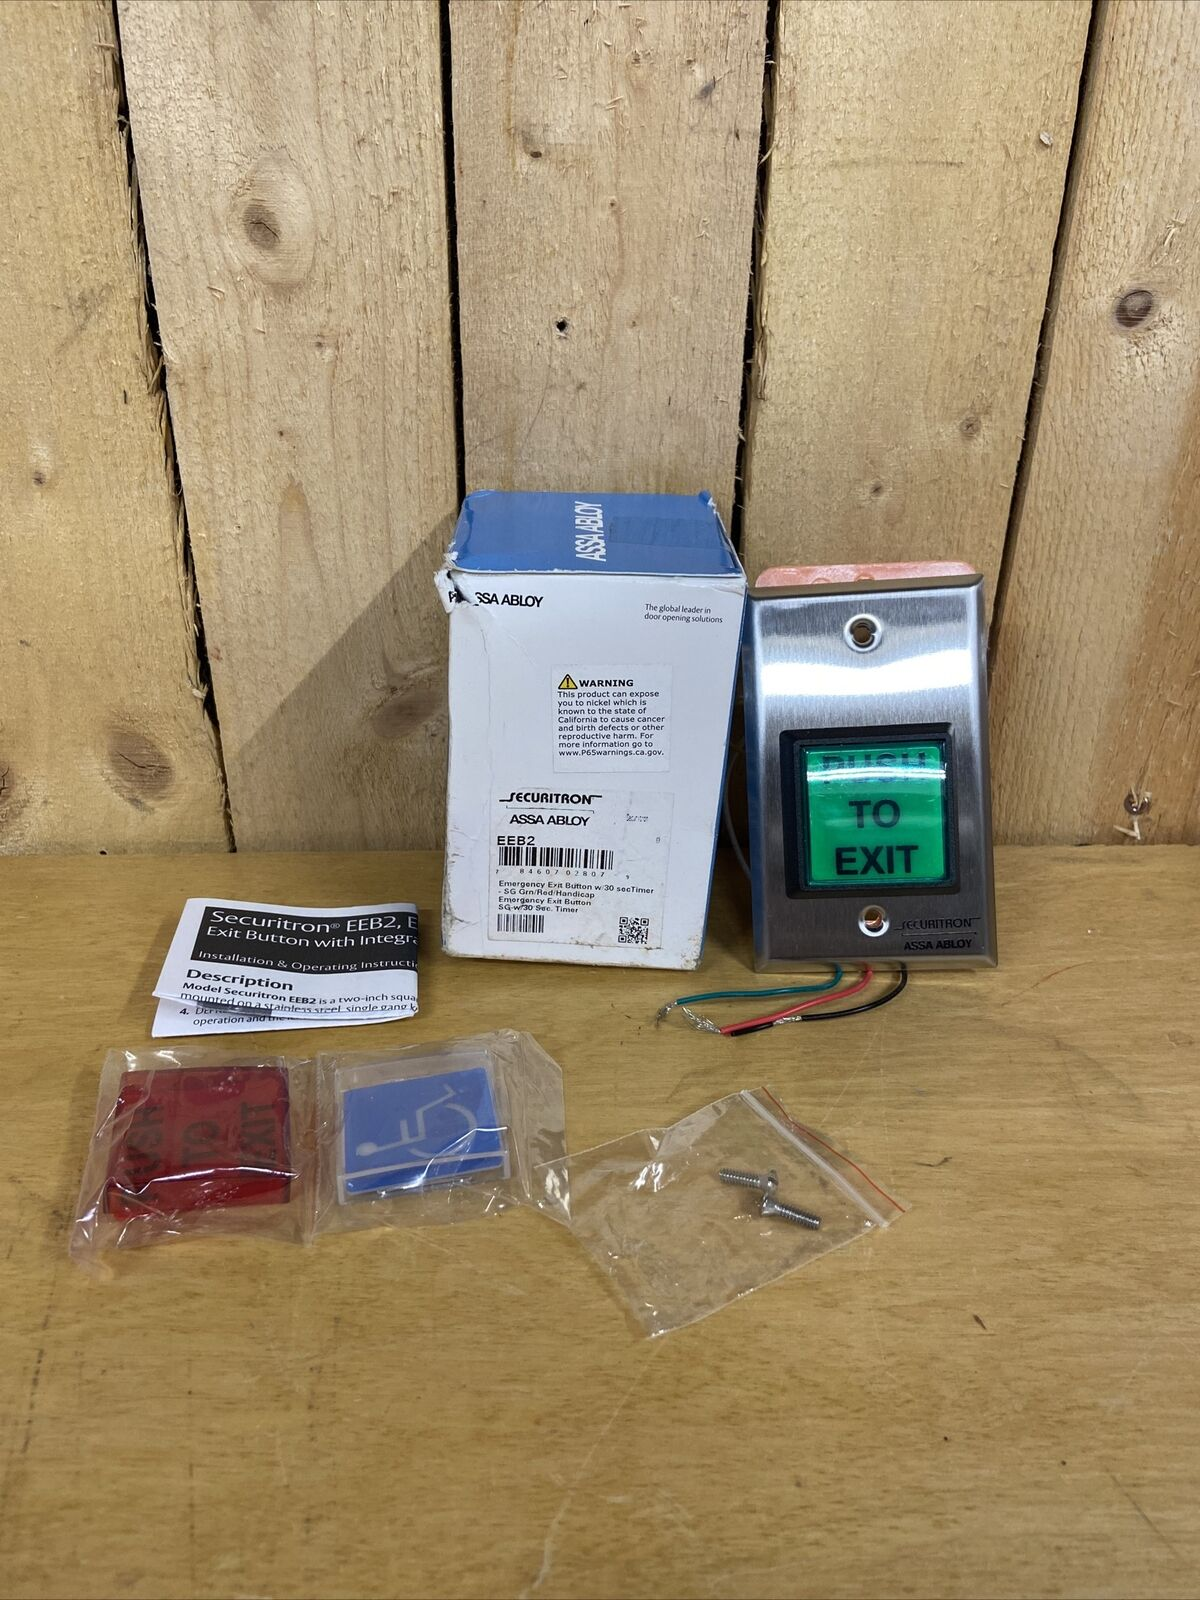 2 Securitron EEB2 Emergency Exit Button B8 for sale online